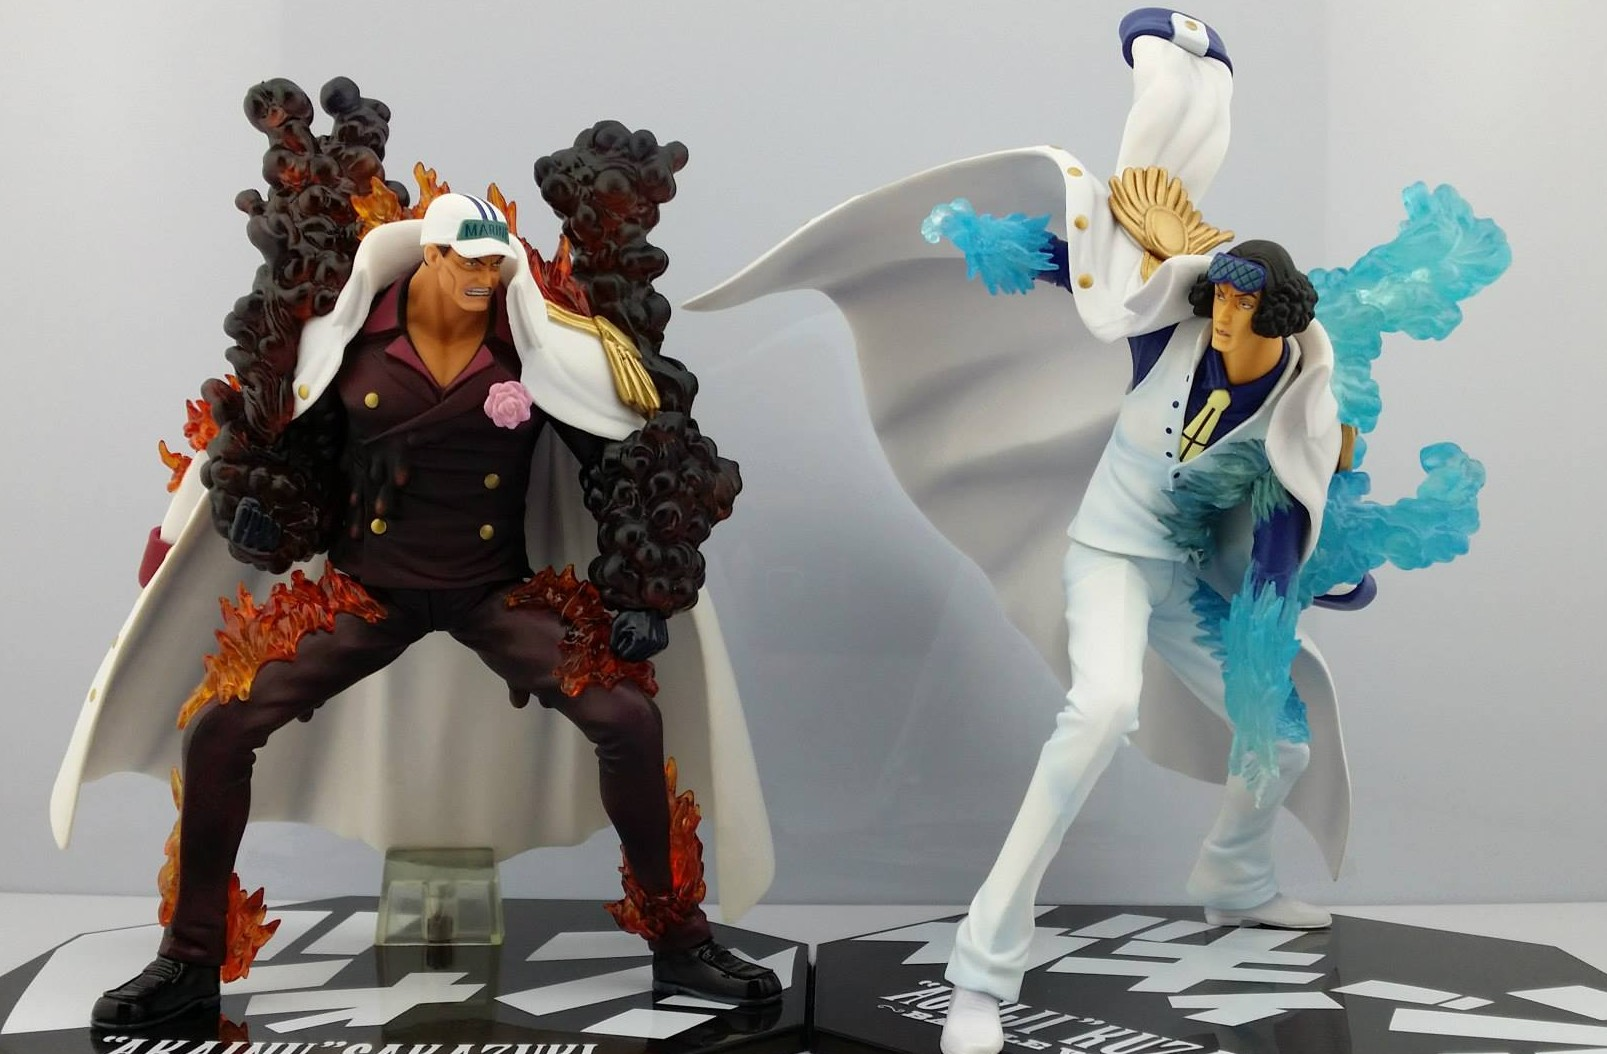 One Piece Figuarts Zero Admiral Akainu vs Aokiji Battle Ver FiguresAokiji Vs Akainu